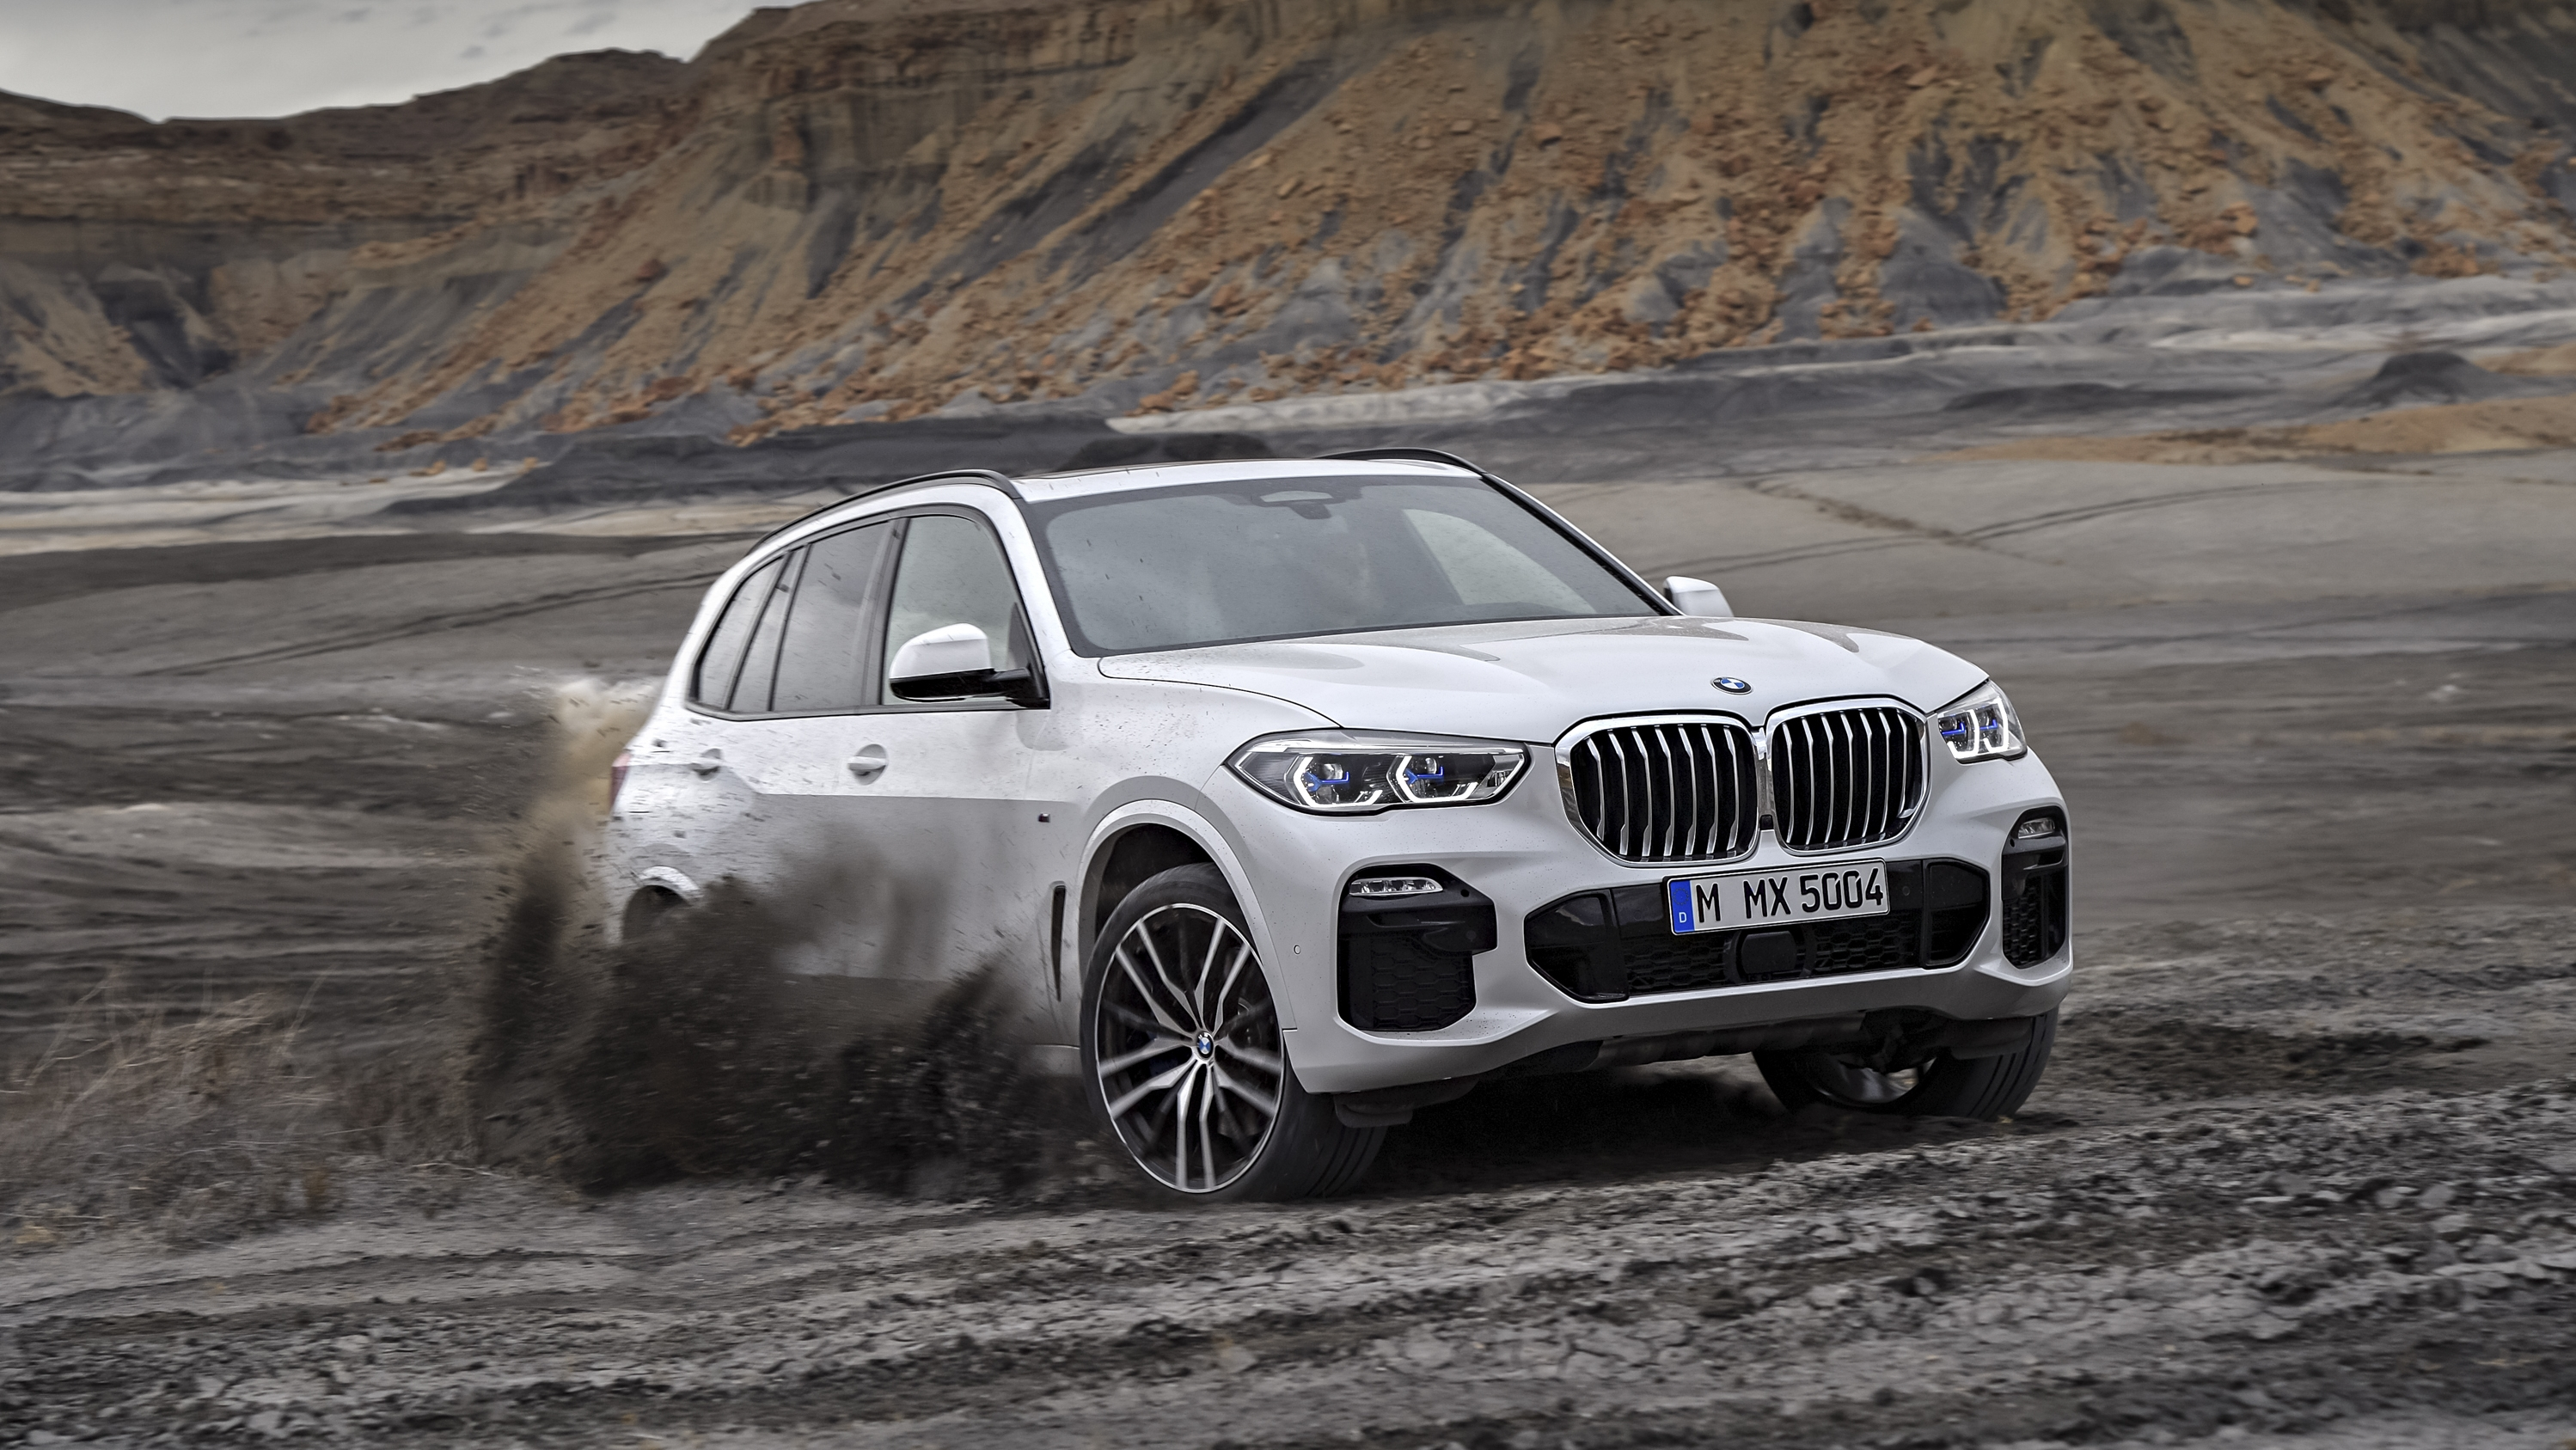 Bmw X5 Towing >> Is The BMW X5 Really Suitable For Towing Or Going Off-Road? | Top Speed